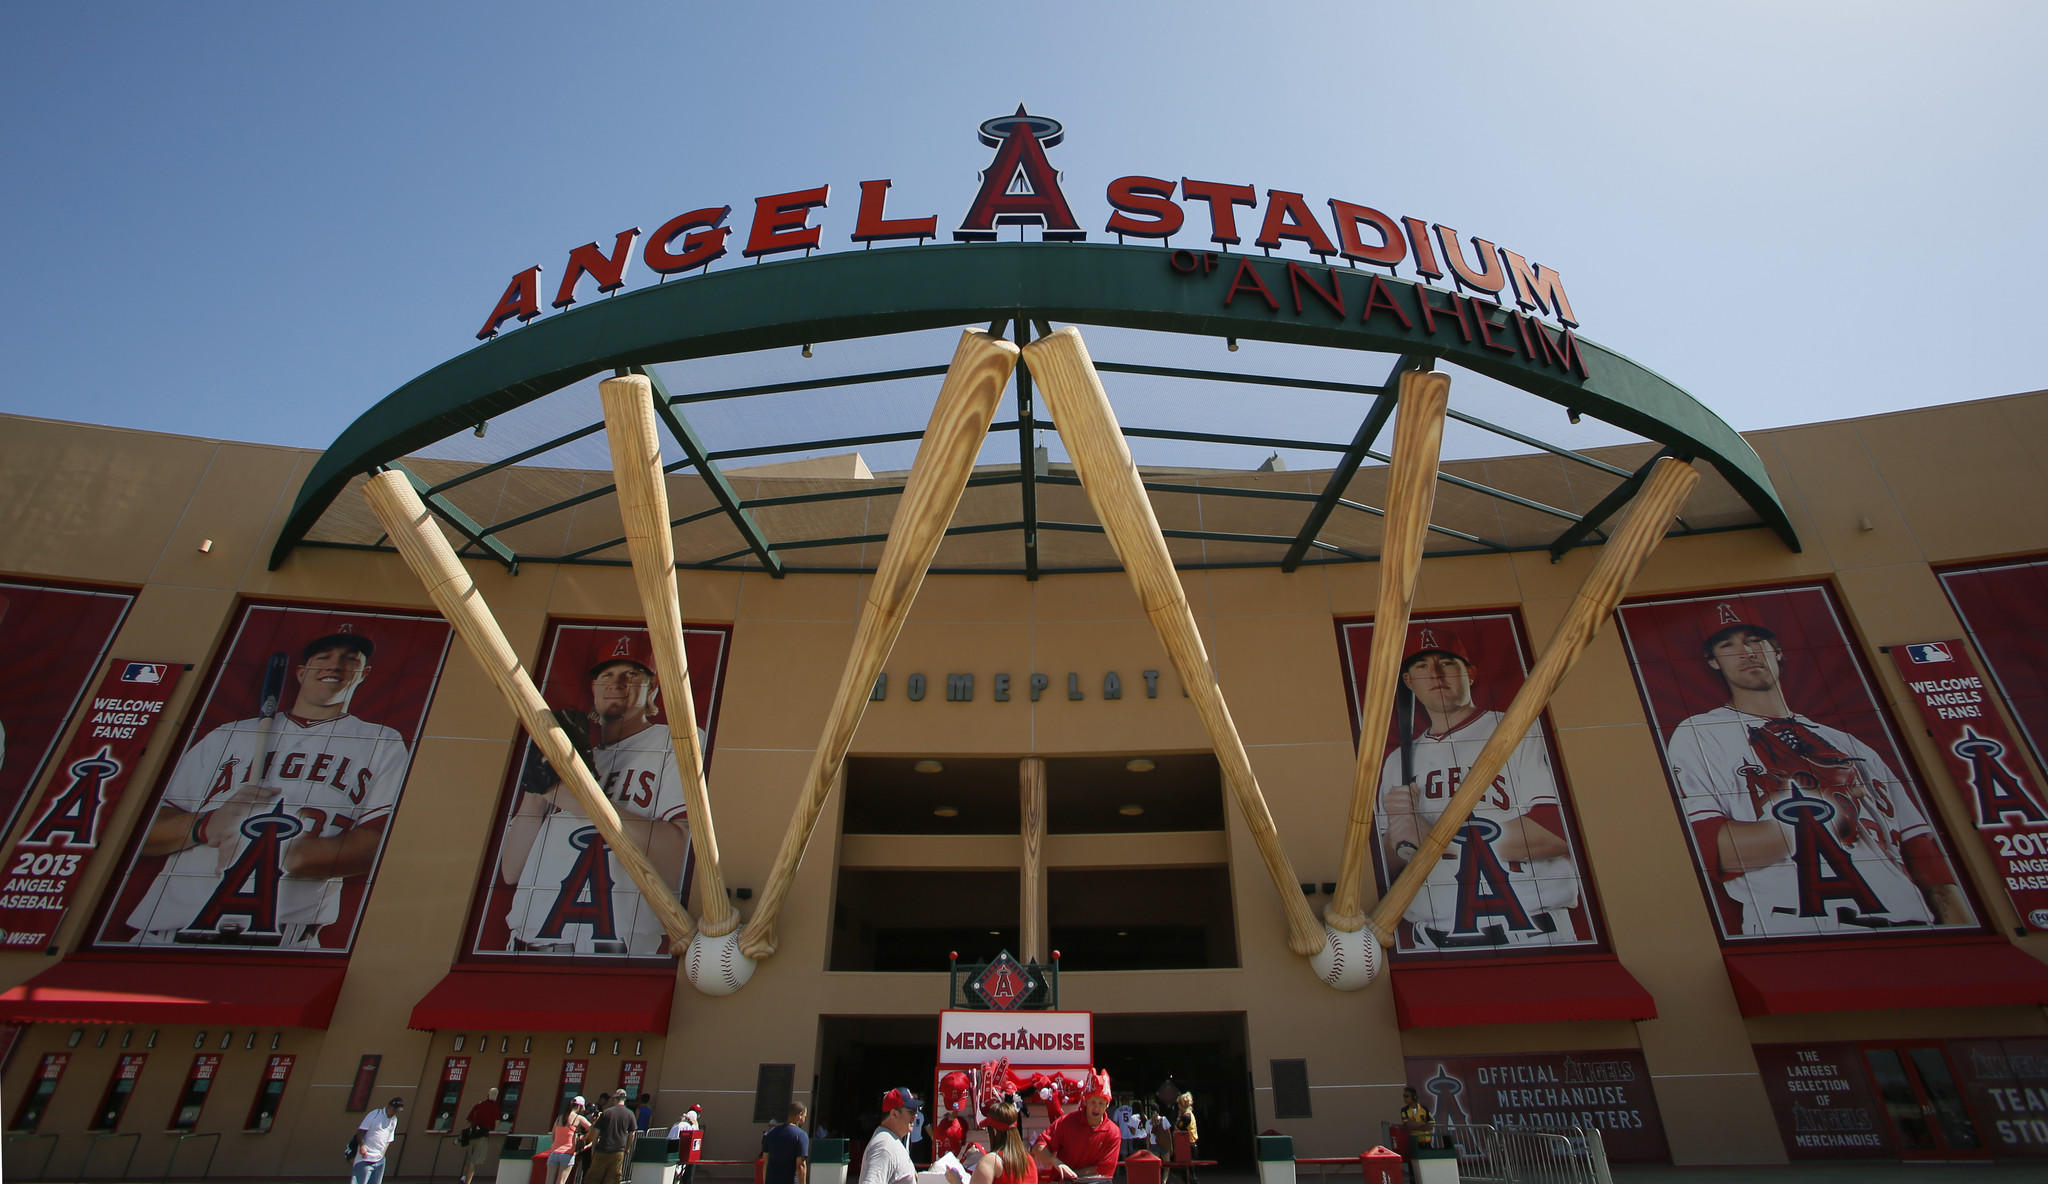 A proposed long-term deal to keep the Angels in Anaheim has met resistance from Anaheim Mayor Tom Tait.